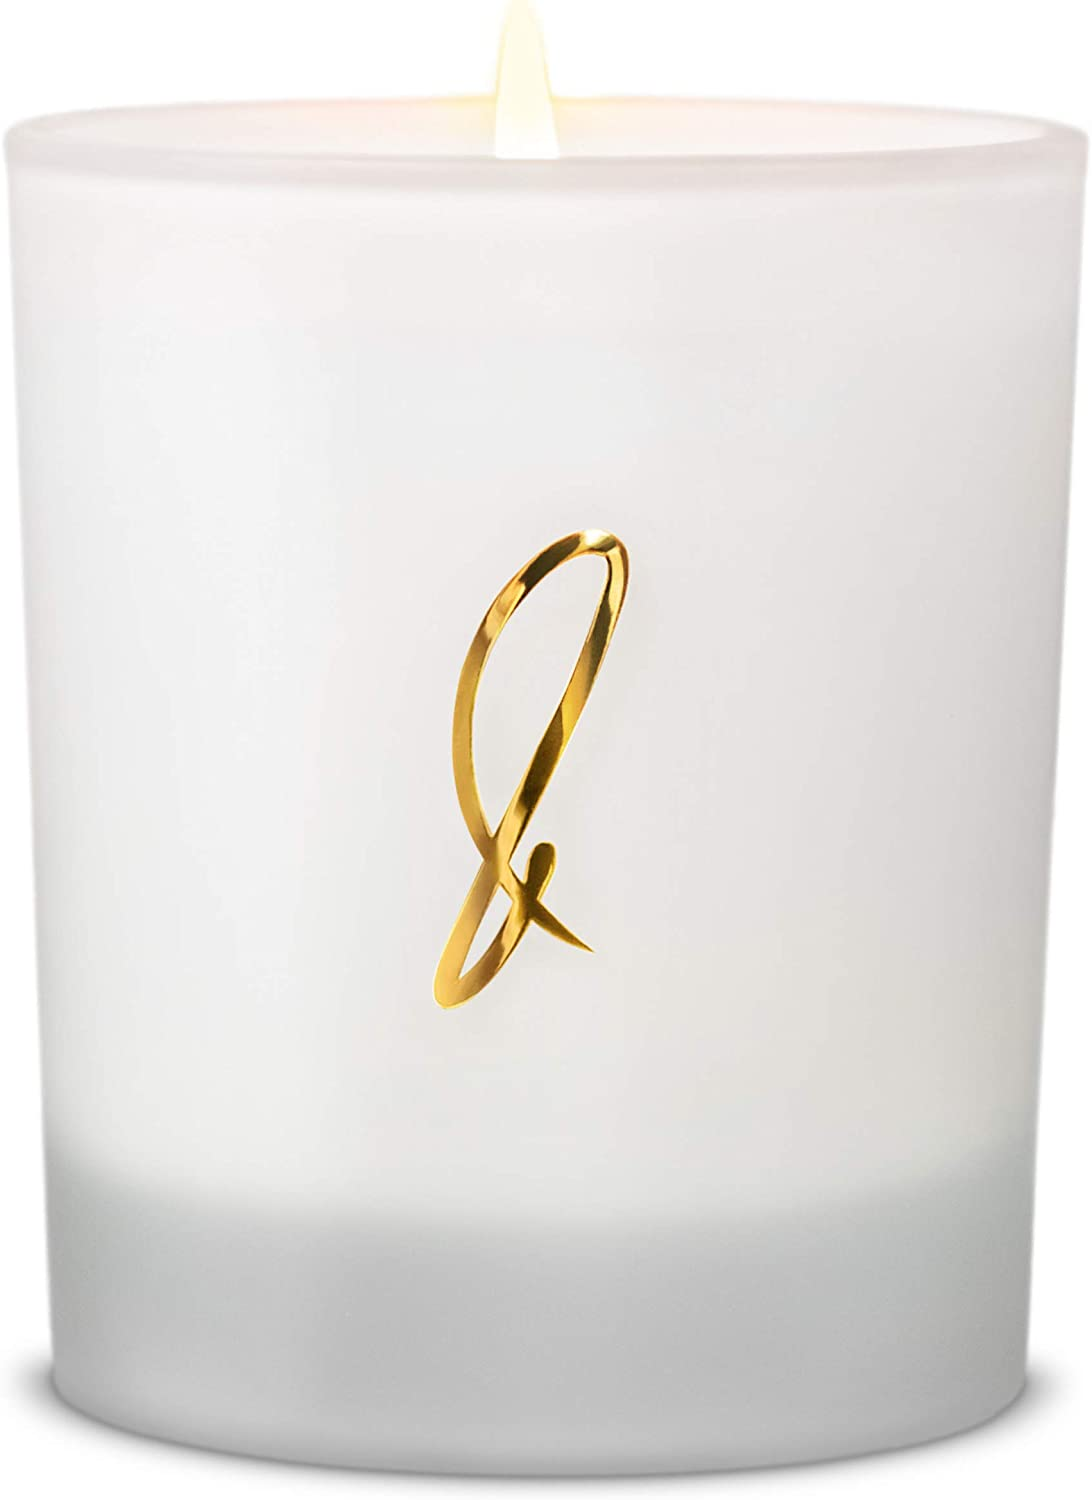 Vanilla Bean Scented Soy Candles, Premium All-Natural Soy Wax Candles | Luxury Decorative Frosted White Candles | Long Lasting, Non-Toxic, Clean Burn Aromatherapy Candles, White Scented Candles